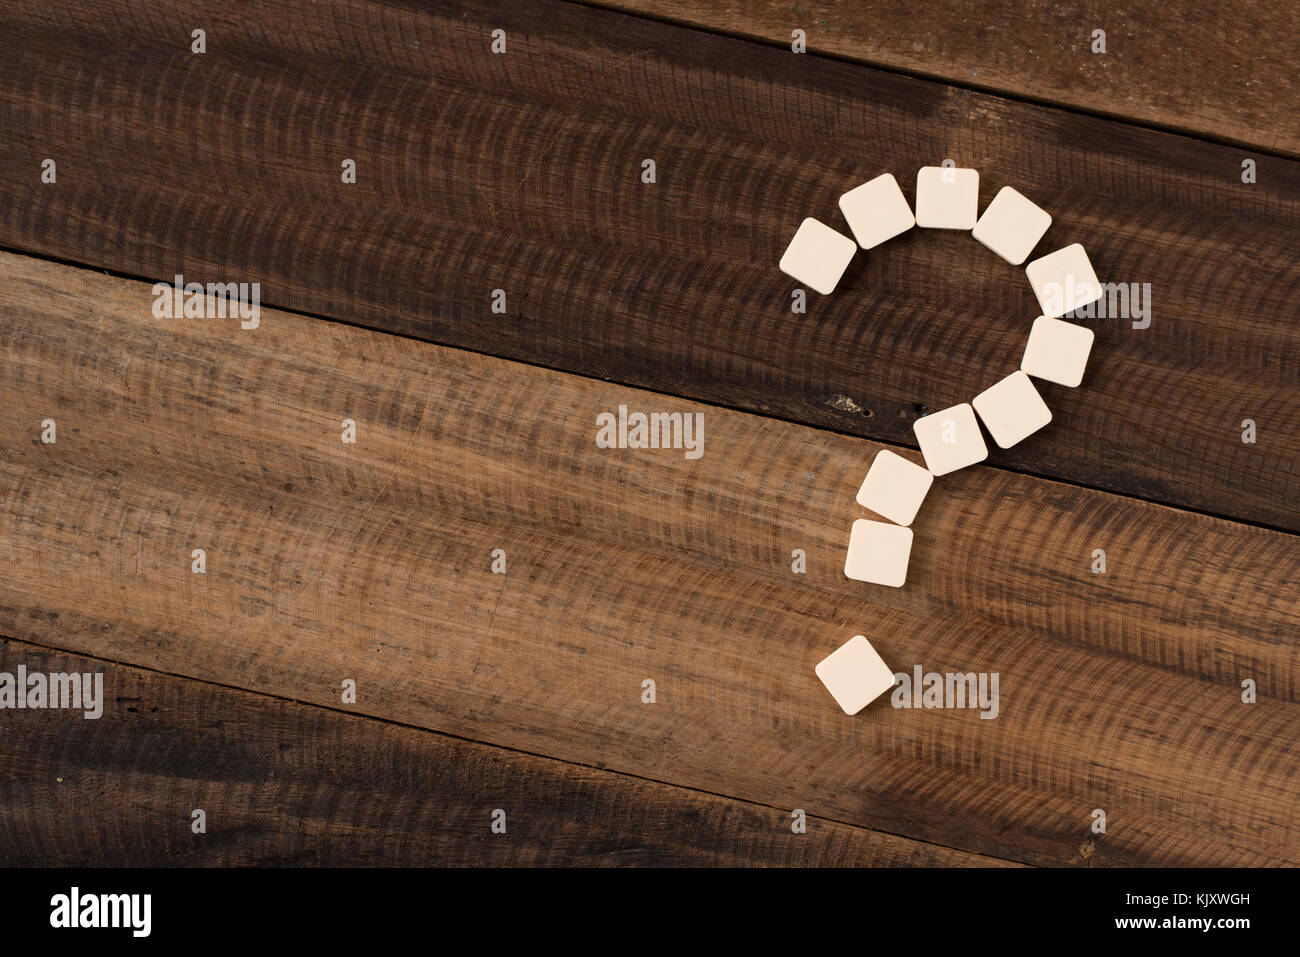 tiles arranged forming question mark. question mark on wooden table background - Stock Image